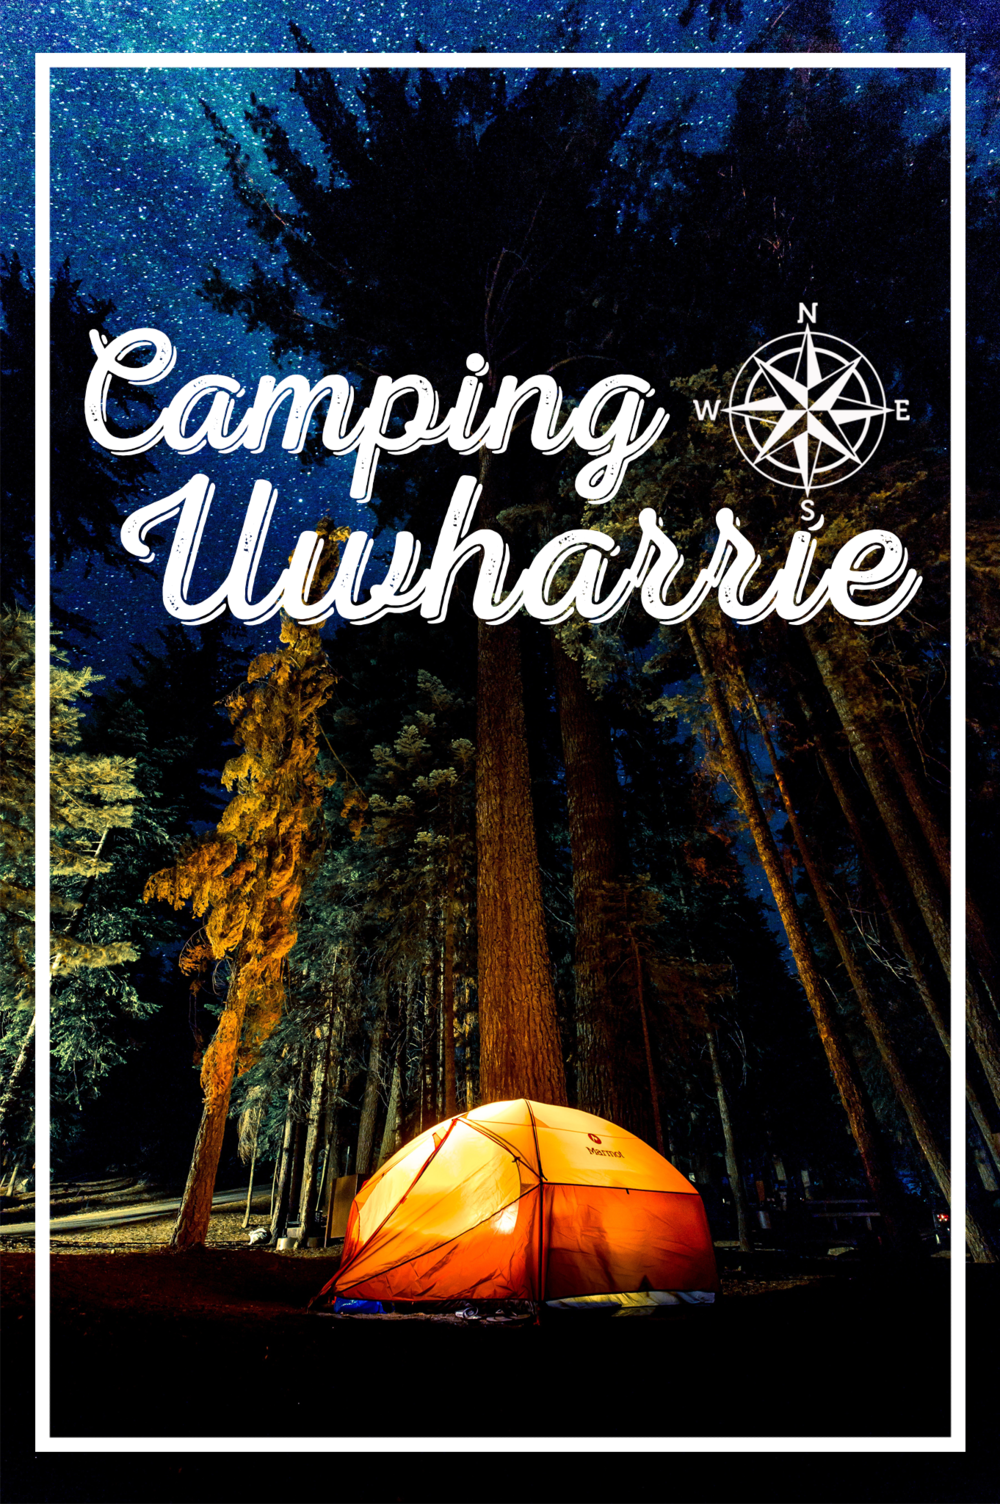 Camping and Campsites